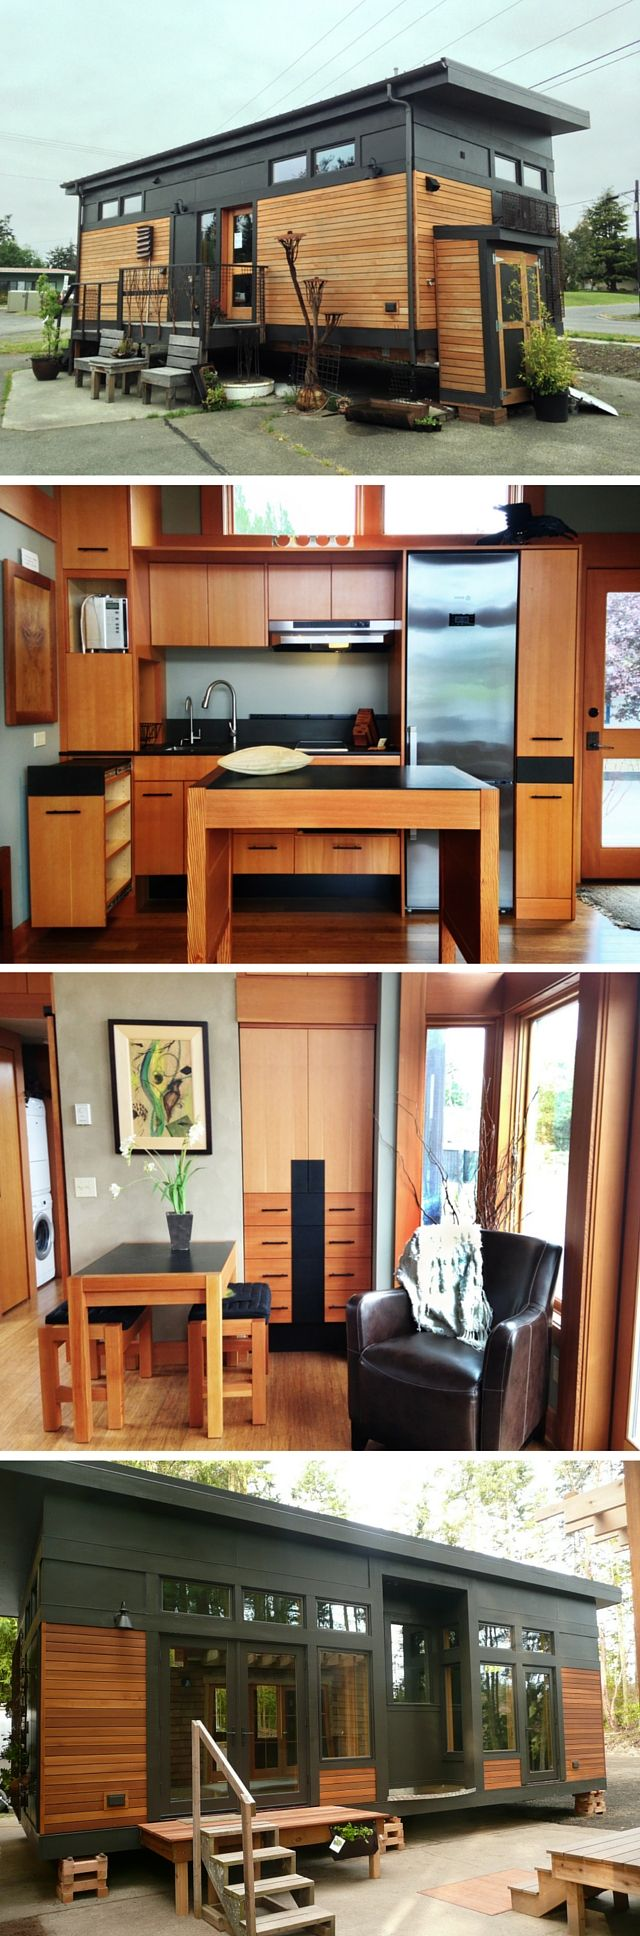 Beautiful Can I Move In Tomorrow? Just Lovin This Model! A 450 Sq Ft Tiny House Named  The Waterhaus. One Of The Most Beautiful Tiny House Interiors Iu0027ve Seen Part 20